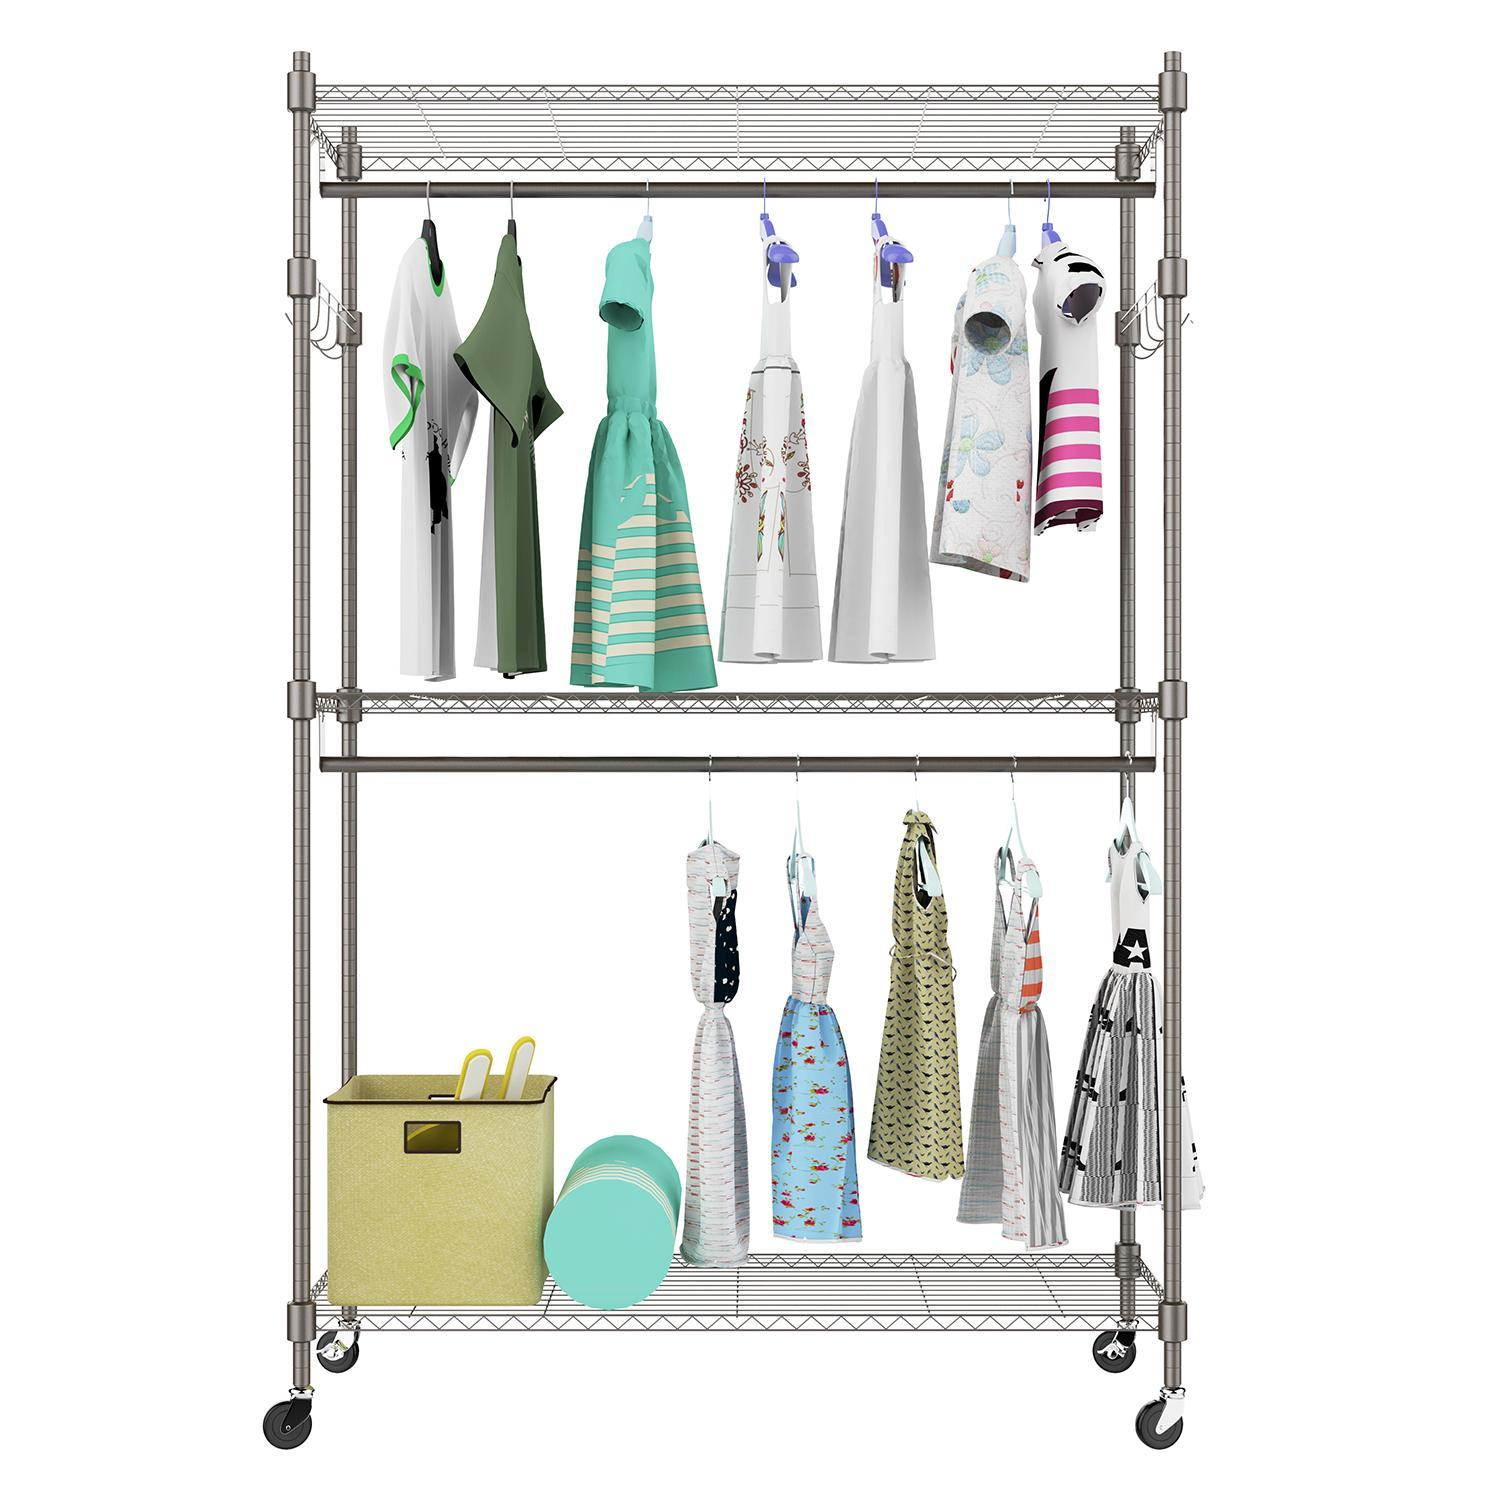 dimensions products shelf corner heavy specs origami rack duty technical